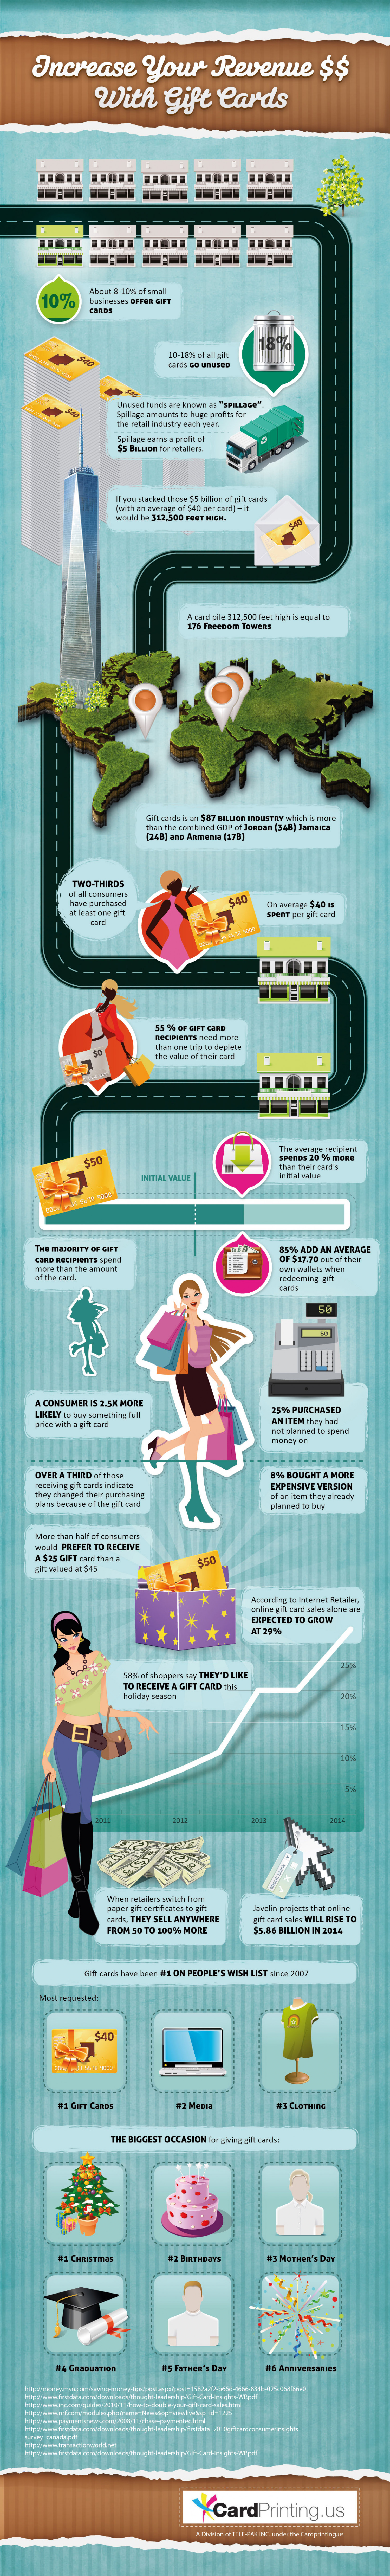 Increase Your Revenue With Gift Cards Infographic